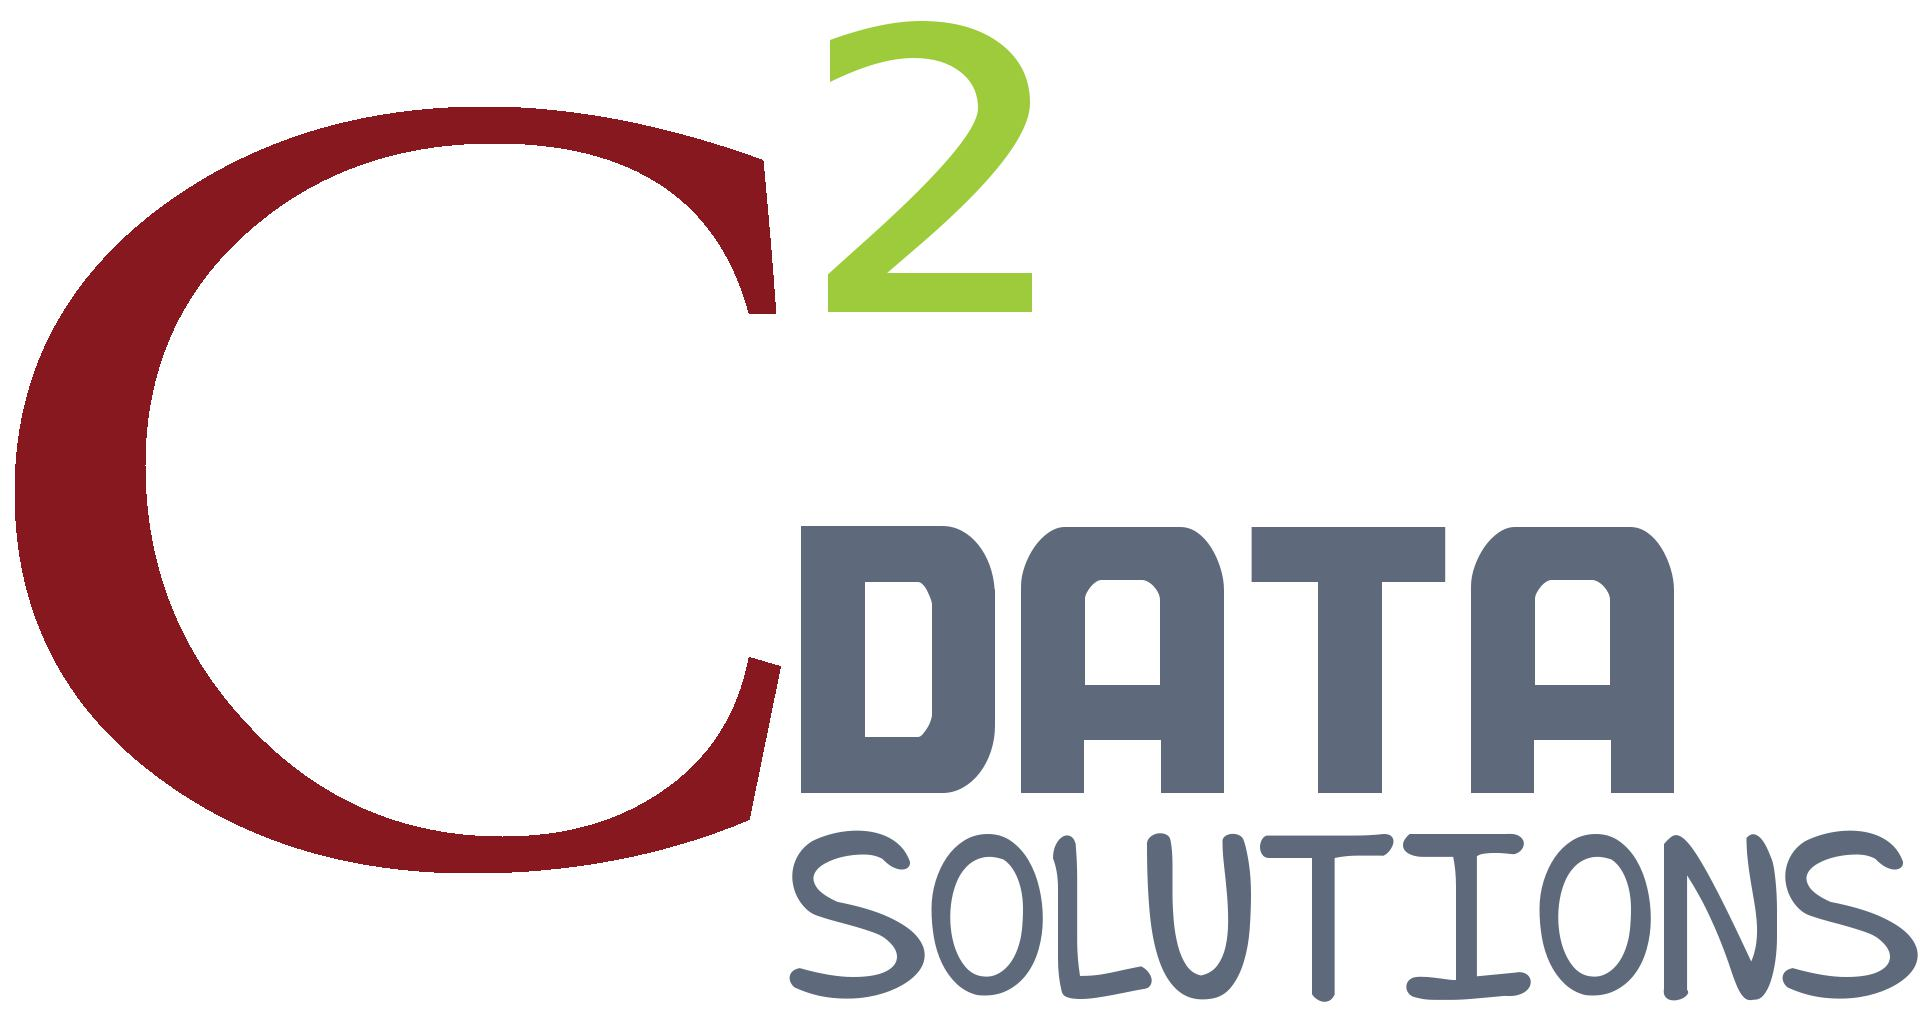 c2 Data Solutions Logo